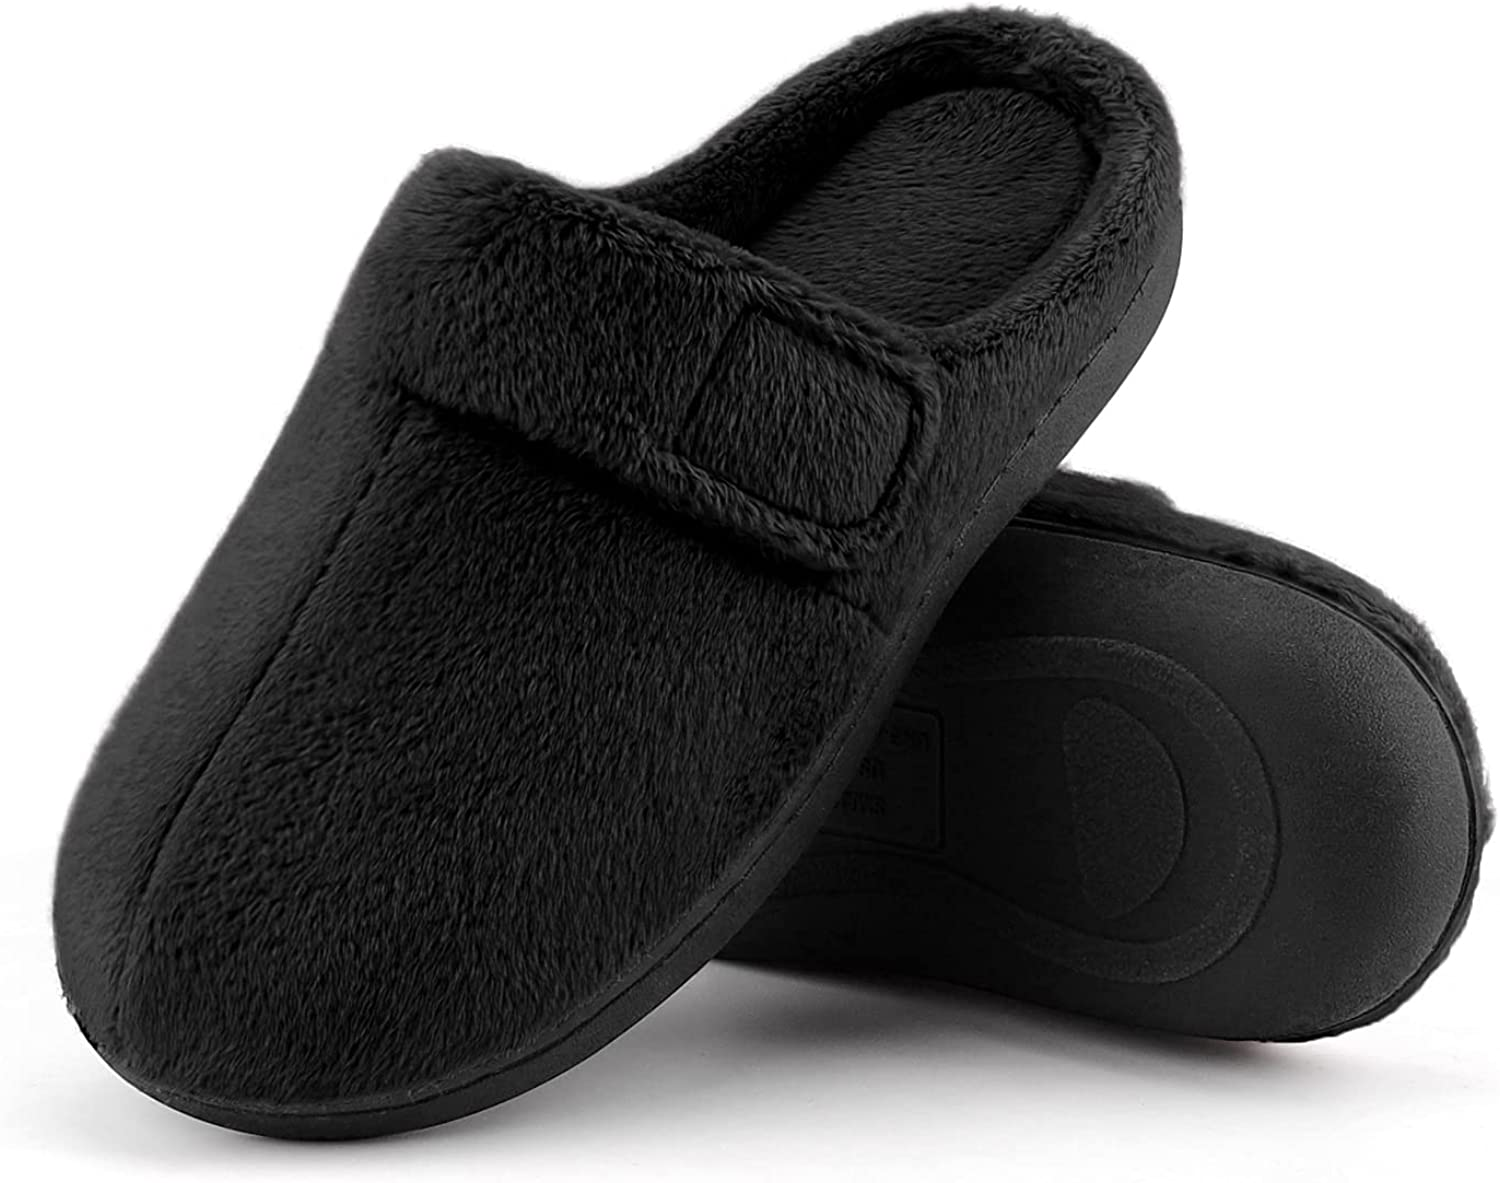 BCTEX COLL Women's Fuzzy Adjustable Sale SALE% OFF Comforta Slippers with Max 45% OFF House